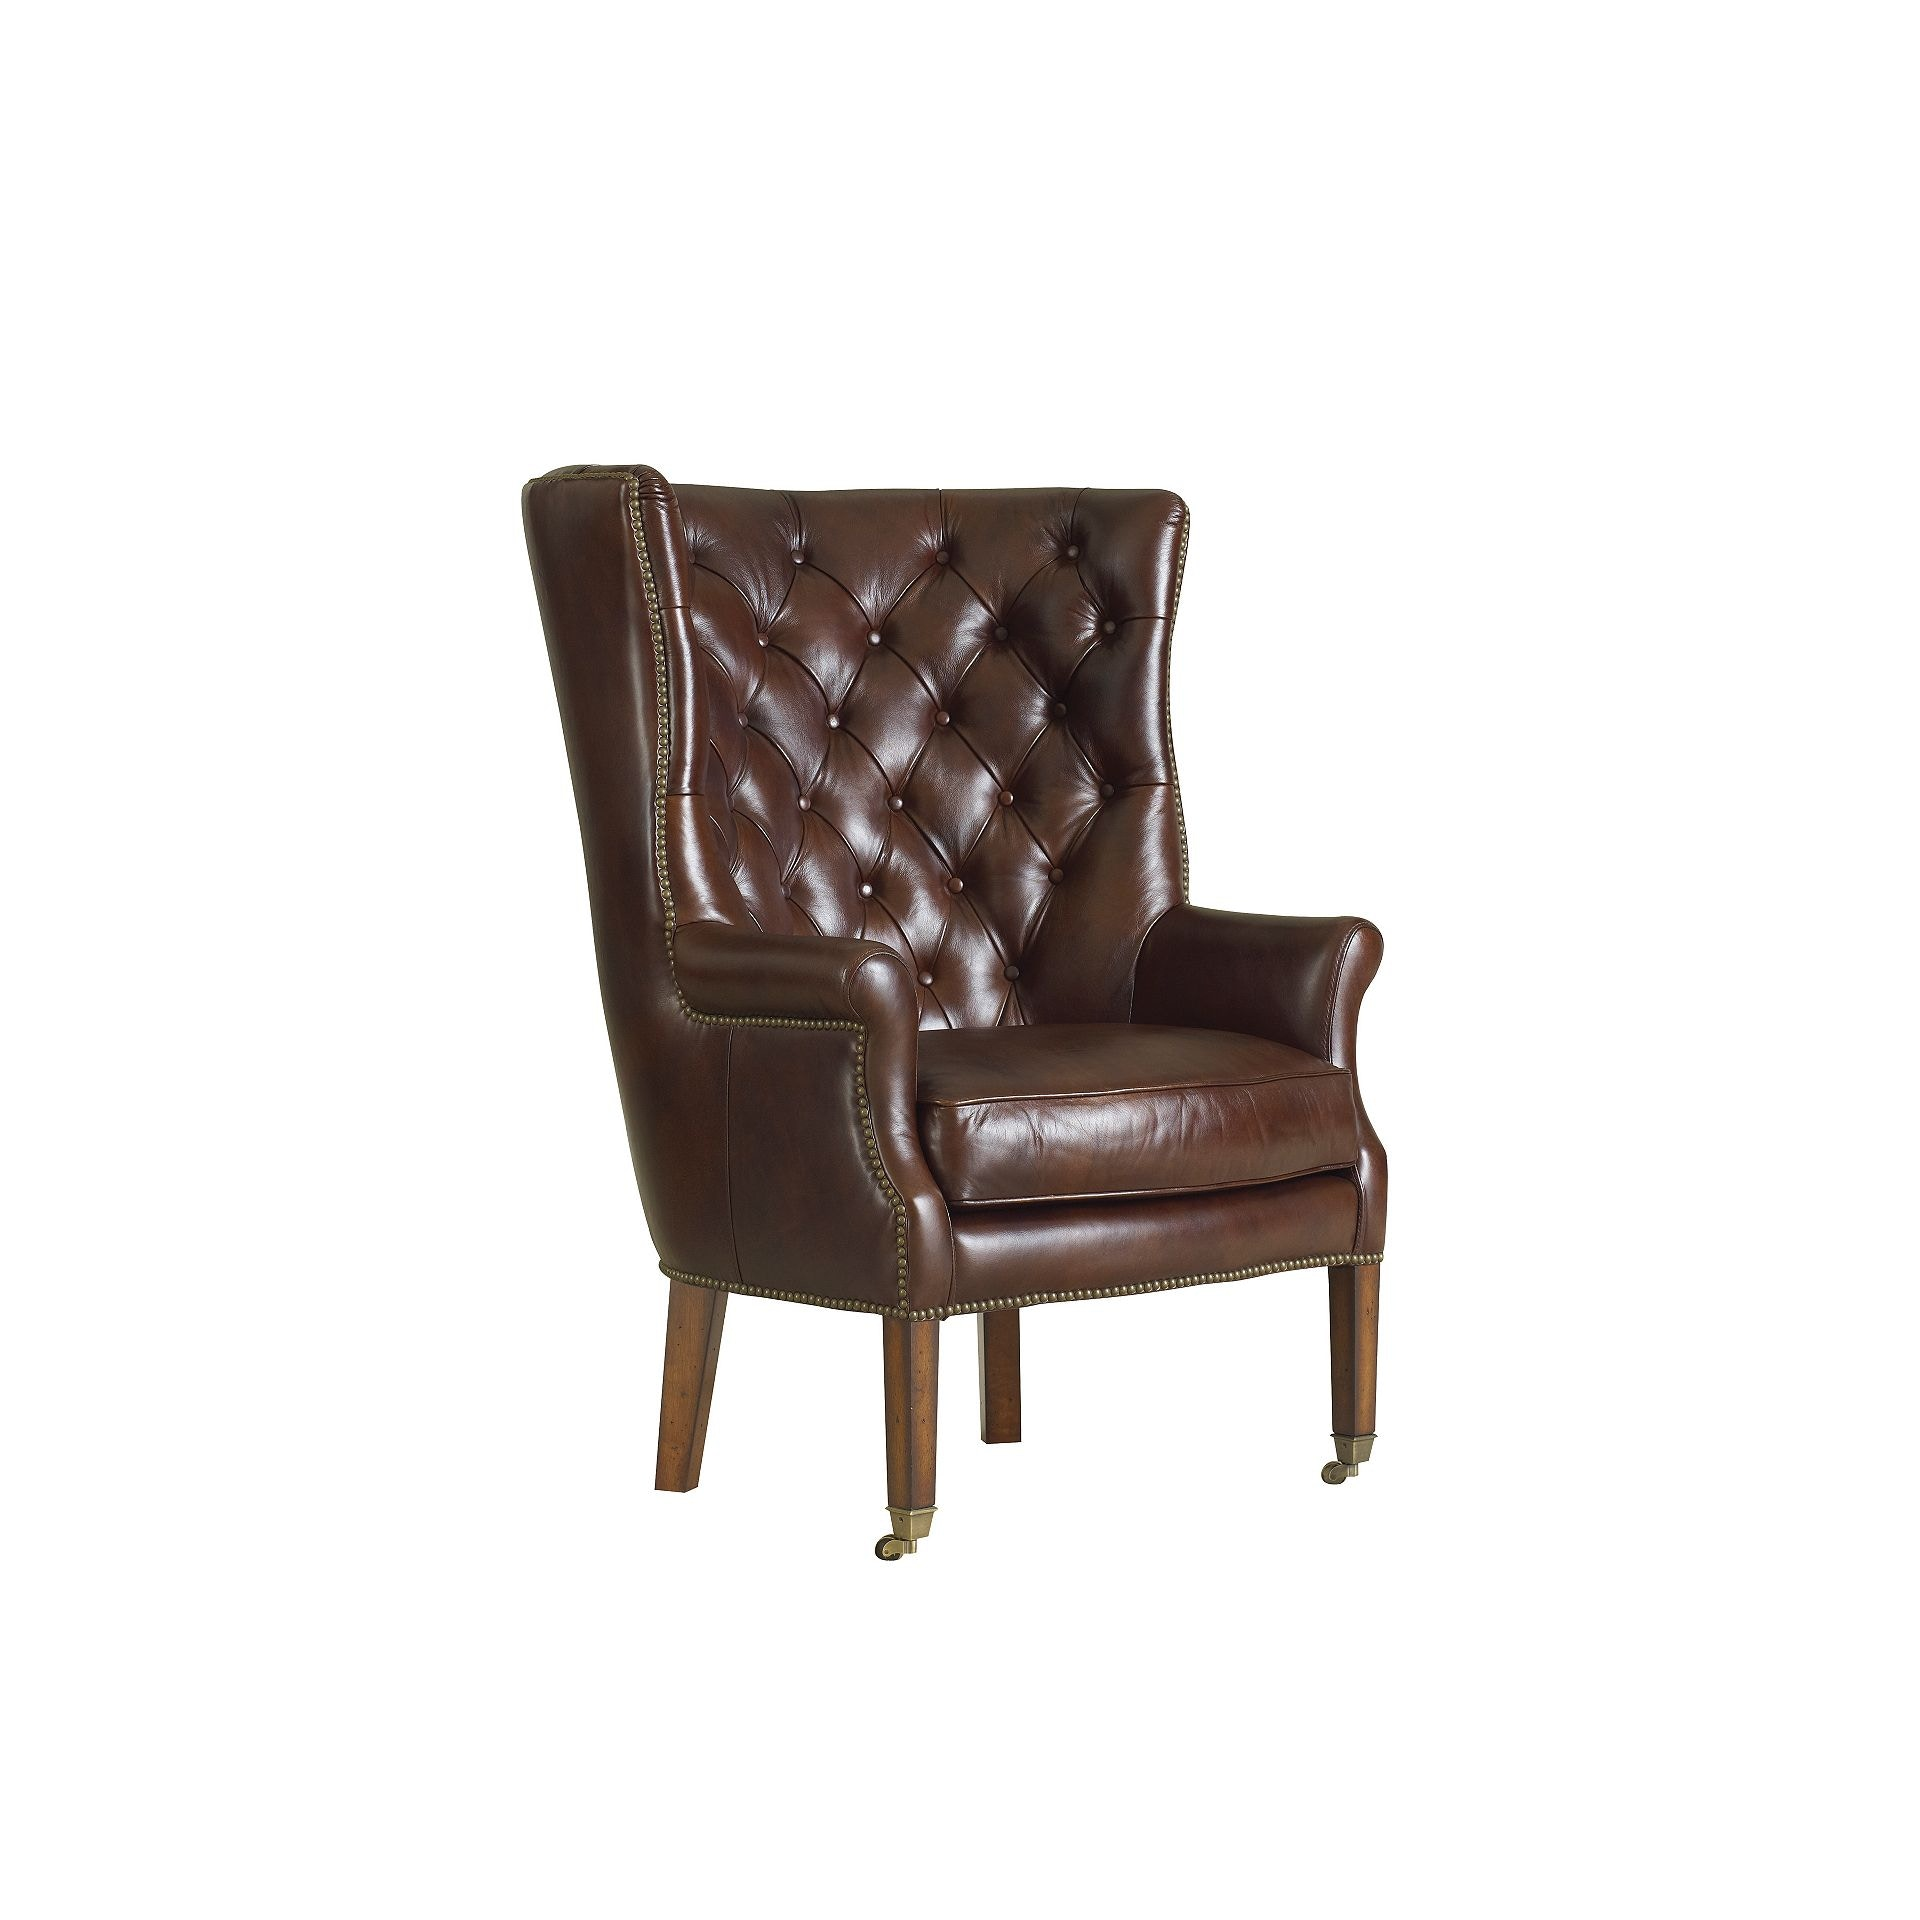 Henredon Furniture Henredon Leather Company Griffin Chair IL8410